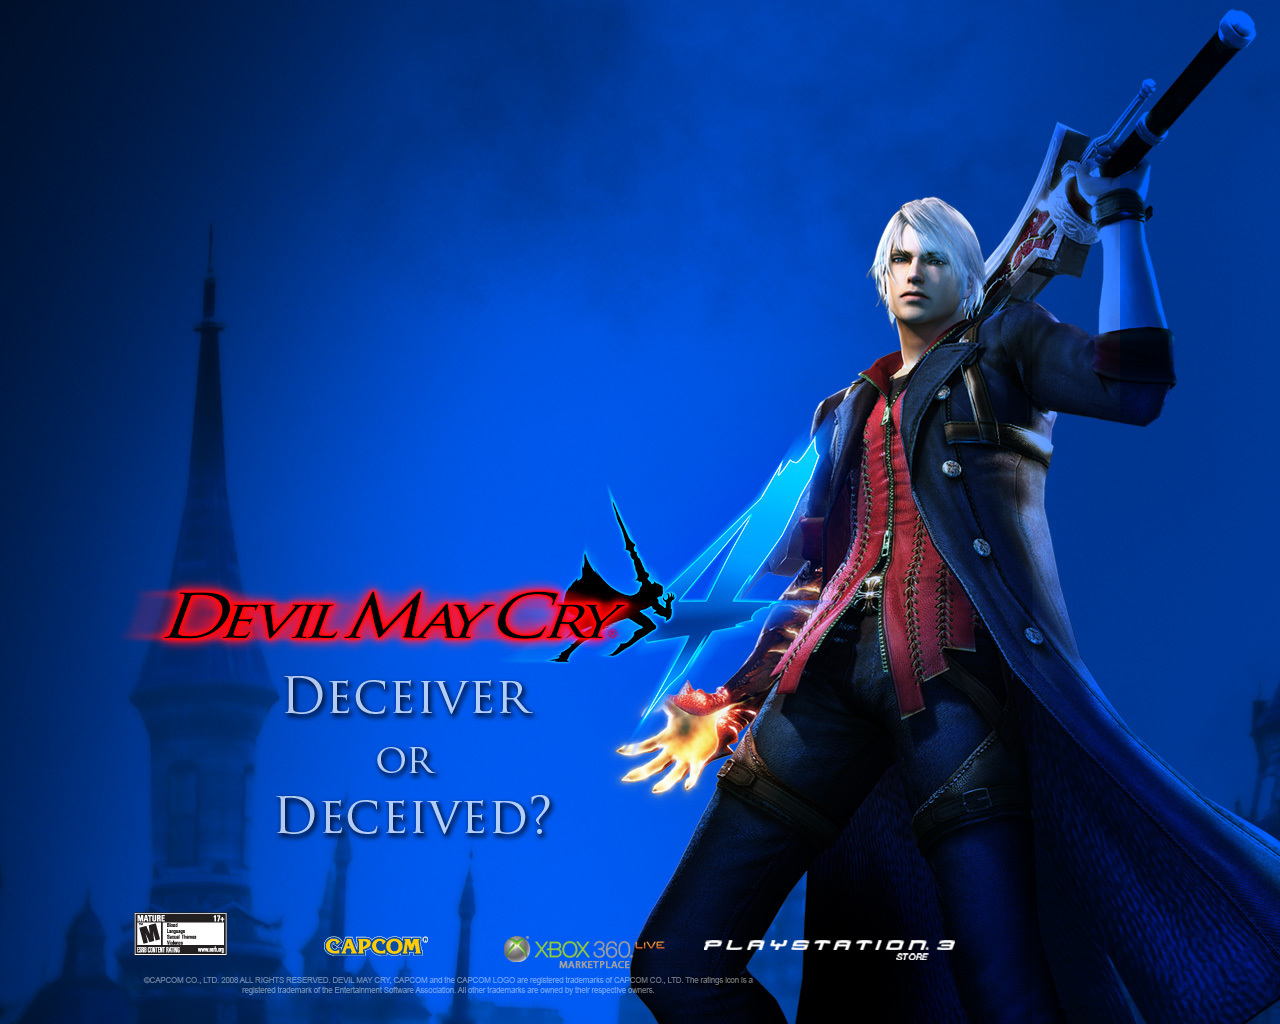 the sons of sparda images devil may cry 4 hd wallpaper and